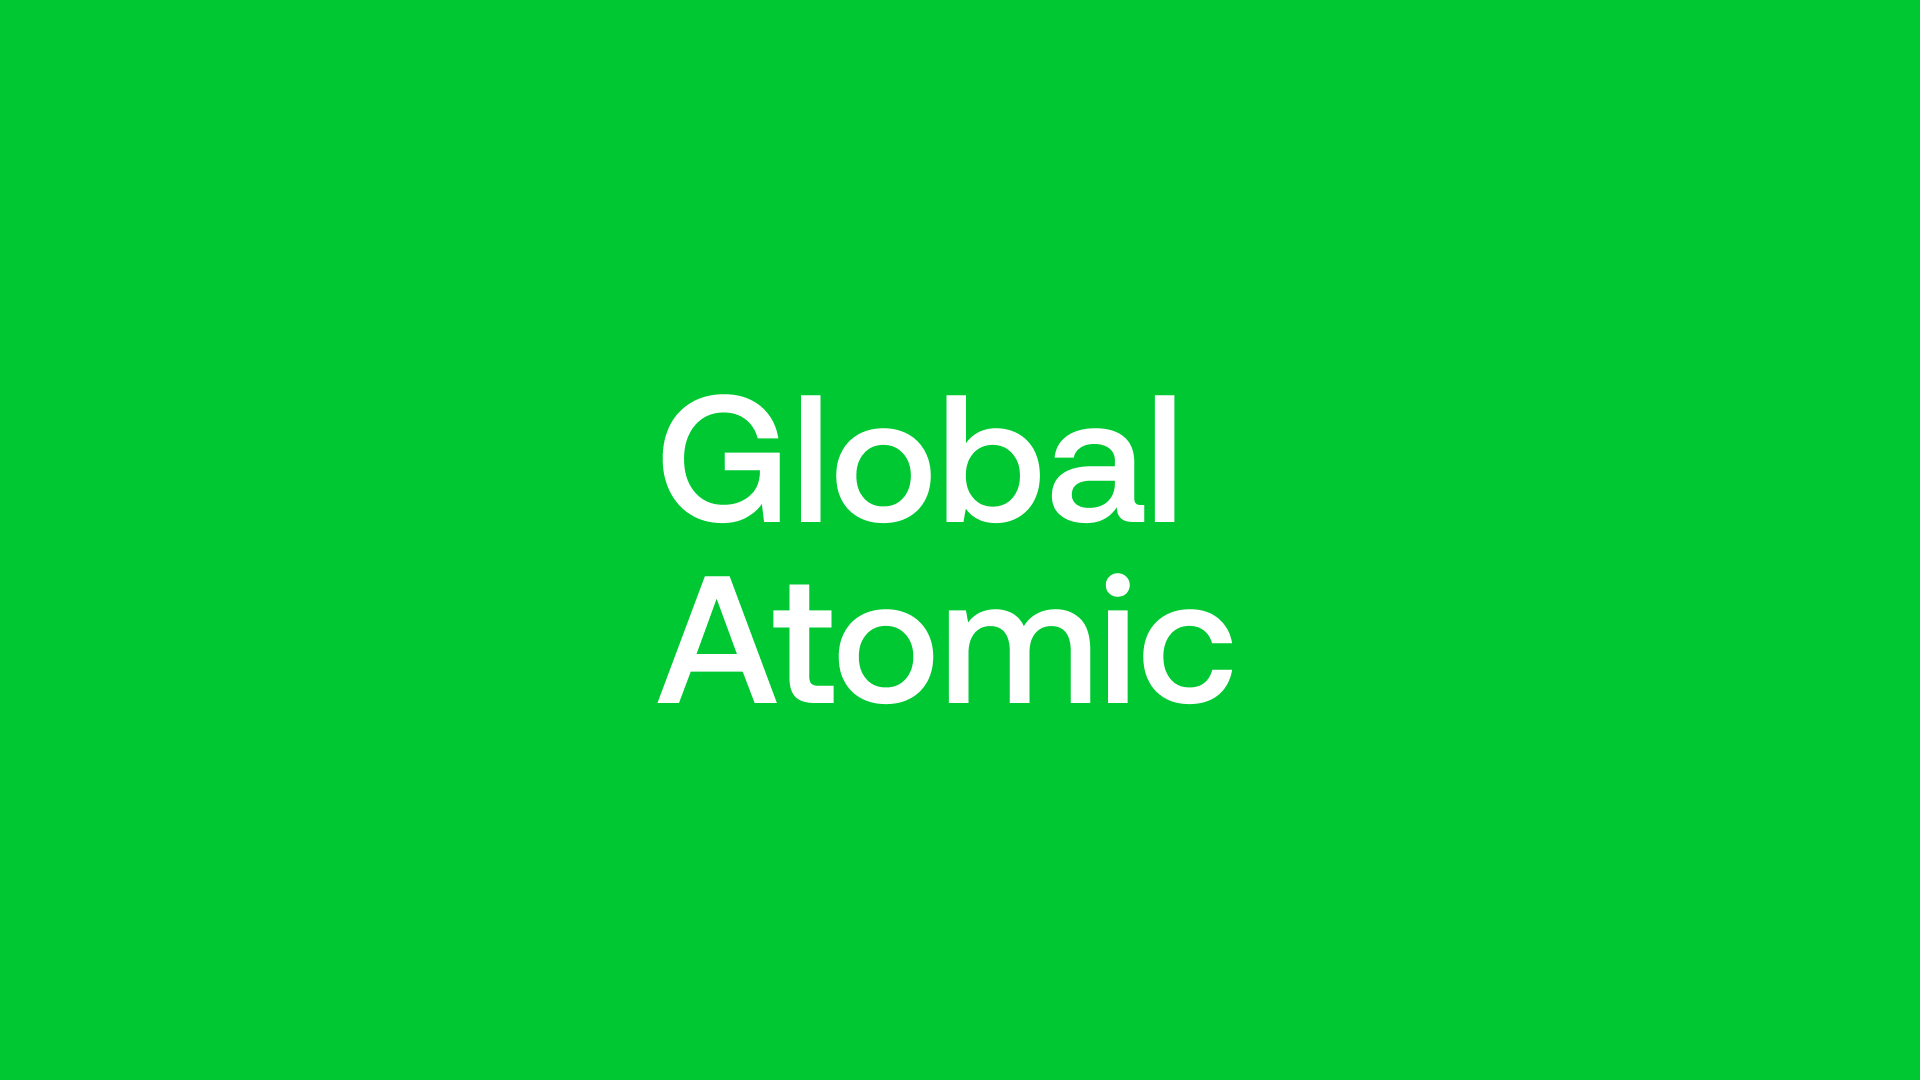 Global Atomic (GLO) - Operations on the Ground Already in Motion